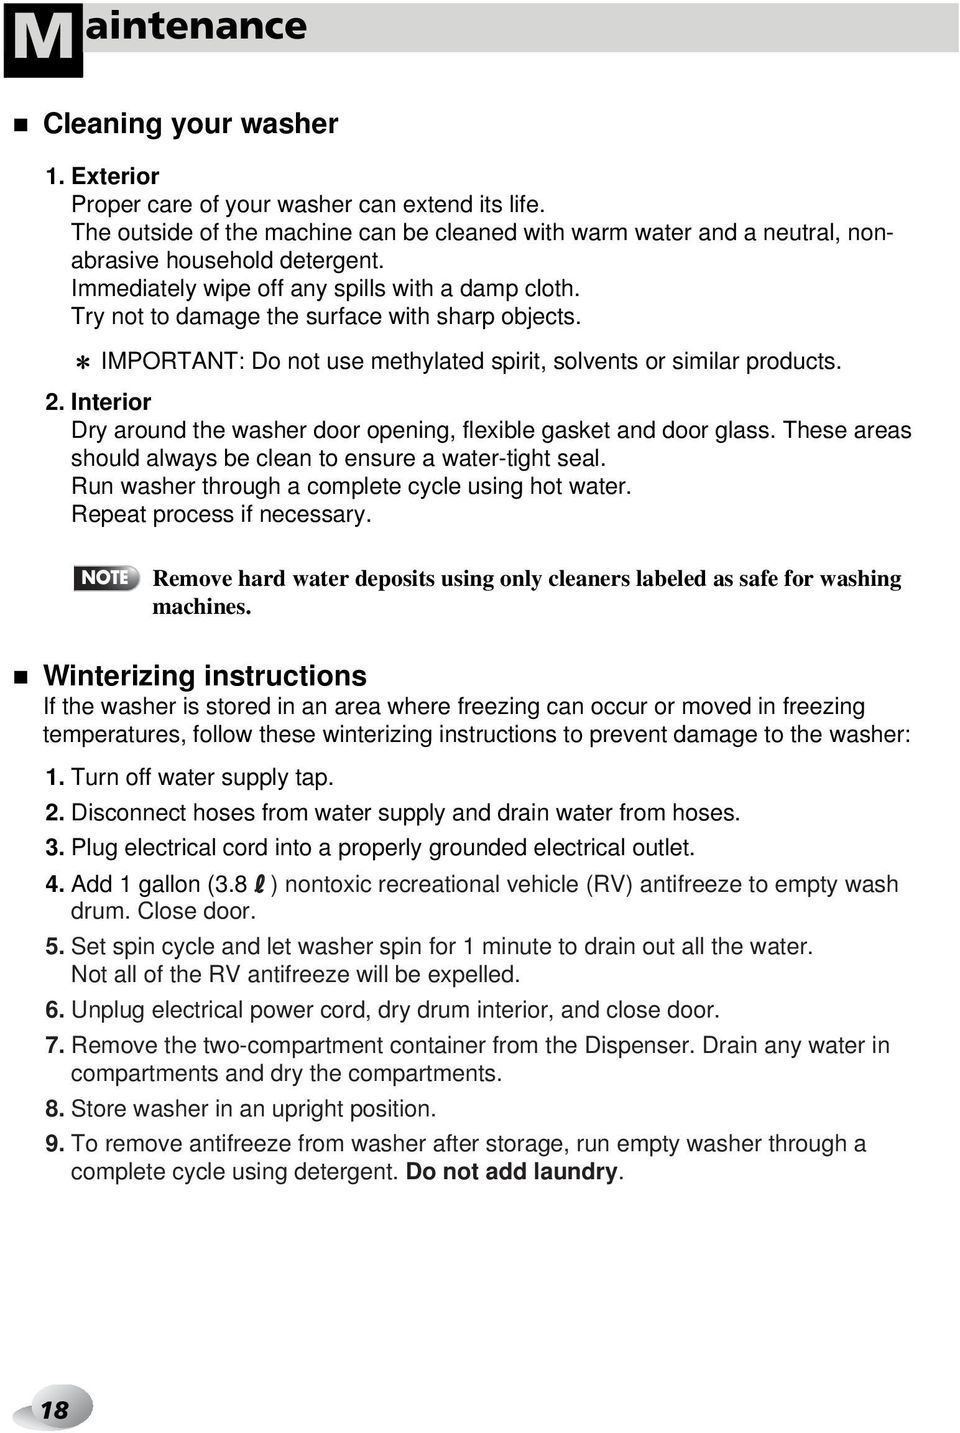 Interior Dry around the washer door opening, flexible gasket and door glass. These areas should always be clean to ensure a water-tight seal. Run washer through a complete cycle using hot water.